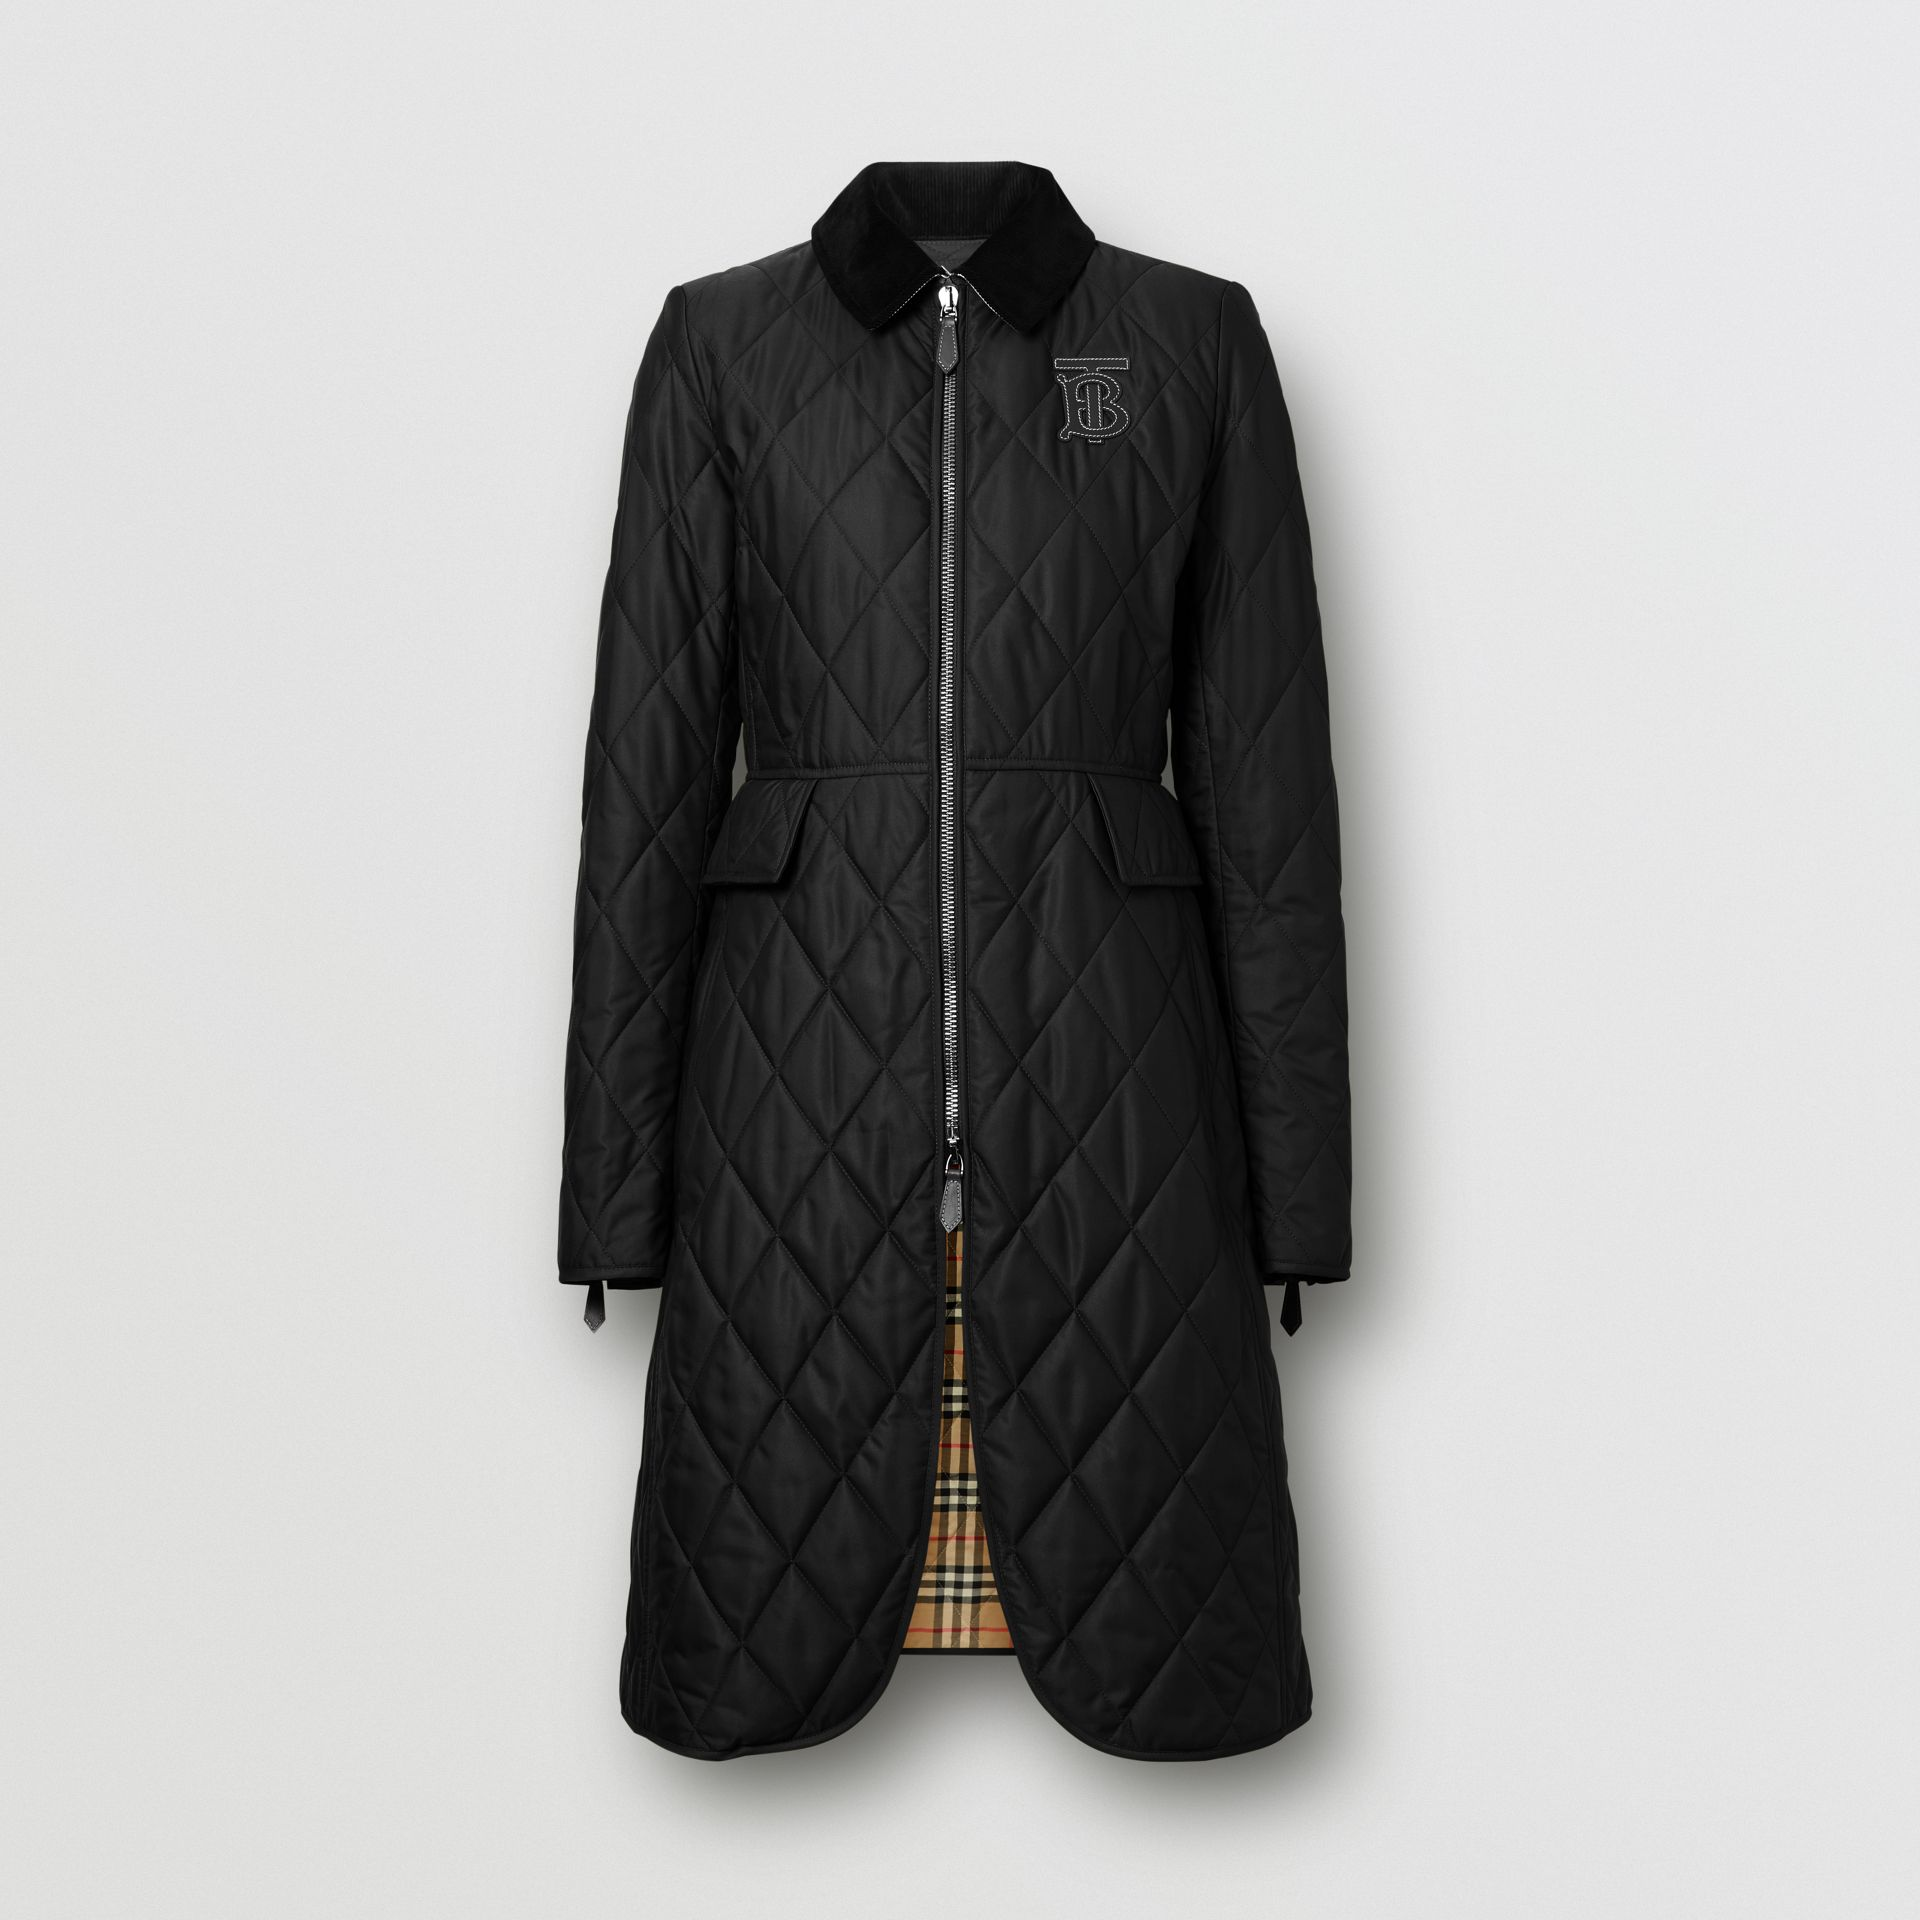 Monogram Motif Quilted Riding Coat in Black - Women | Burberry - gallery image 3